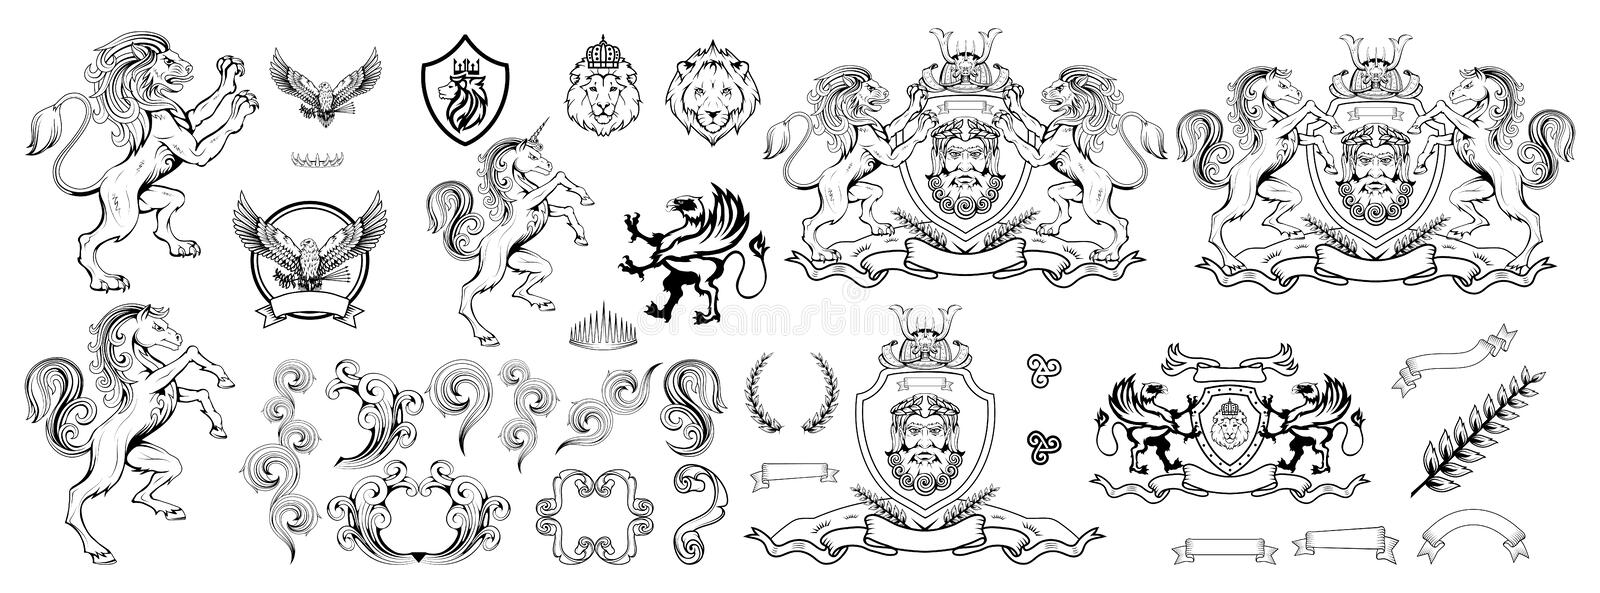 Heraldry, heraldic crest or coat of arms, heraldic elements for your design, engraving, vintage retro style, heraldry animals. Emblem, animals logo, vector vector illustration